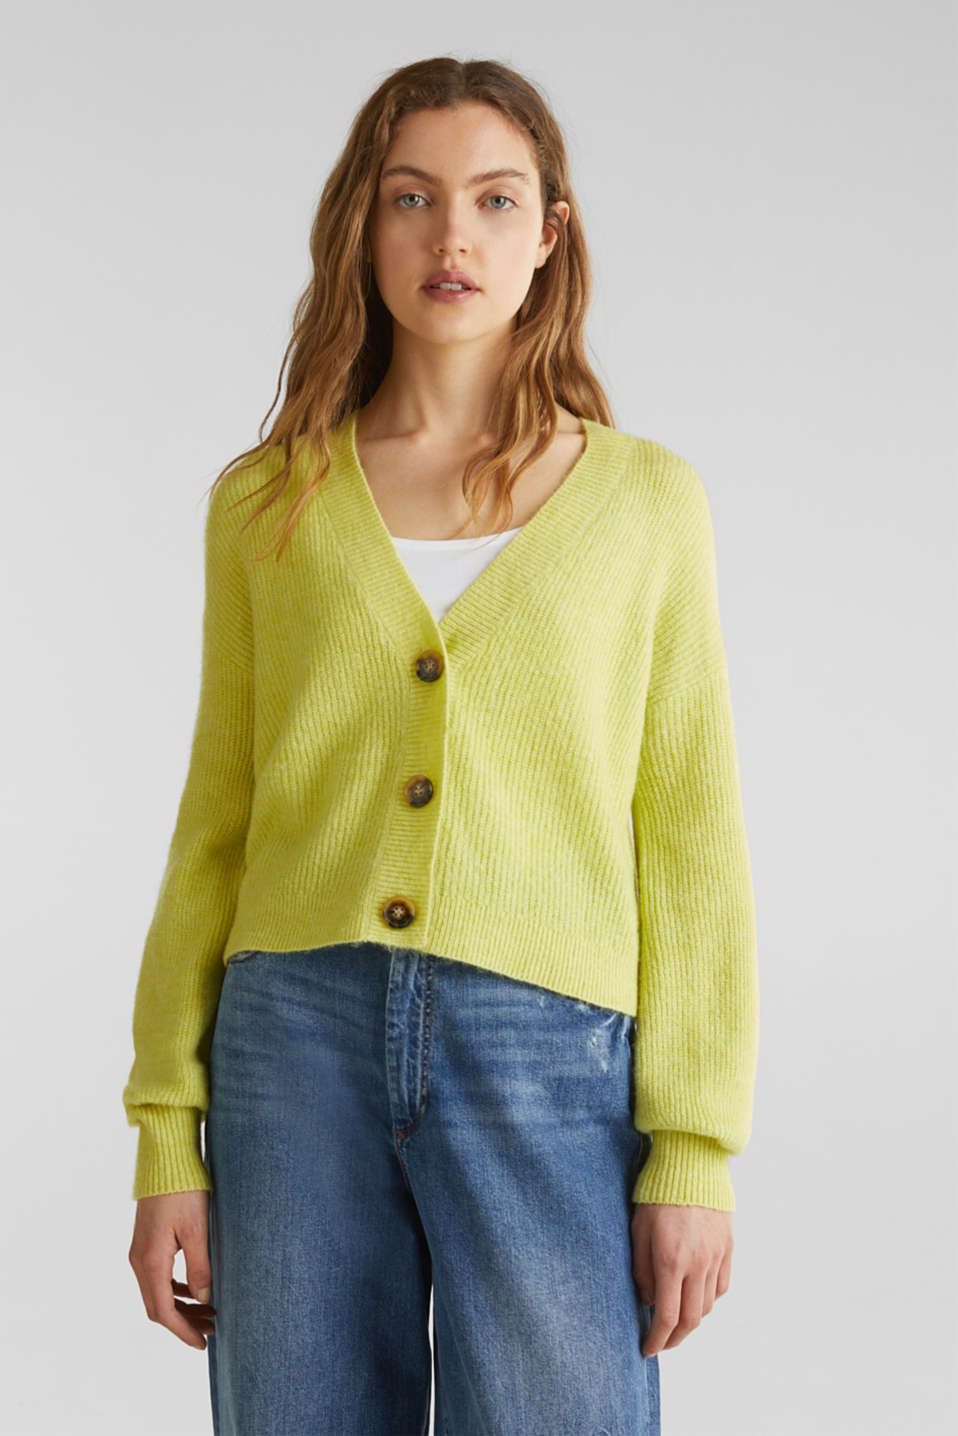 edc - NEON short, boxy stretch cardigan